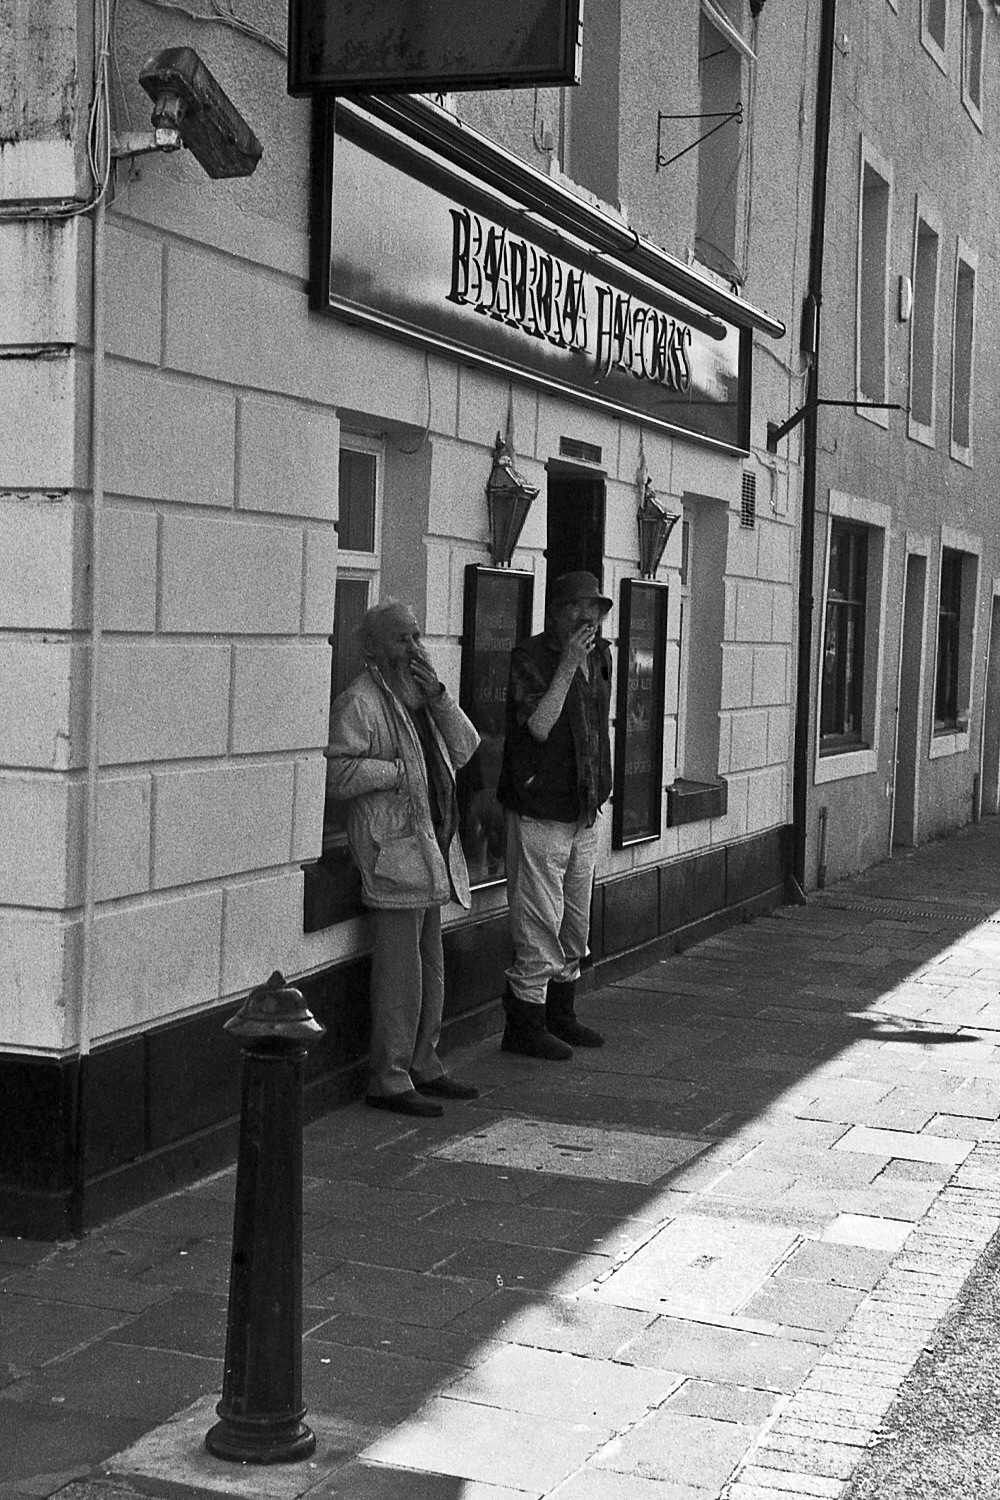 two men smoke outside pub whitehaven street photography uk photographer kevin shelley prints for sale leica m2 jupiter 8 50 f2